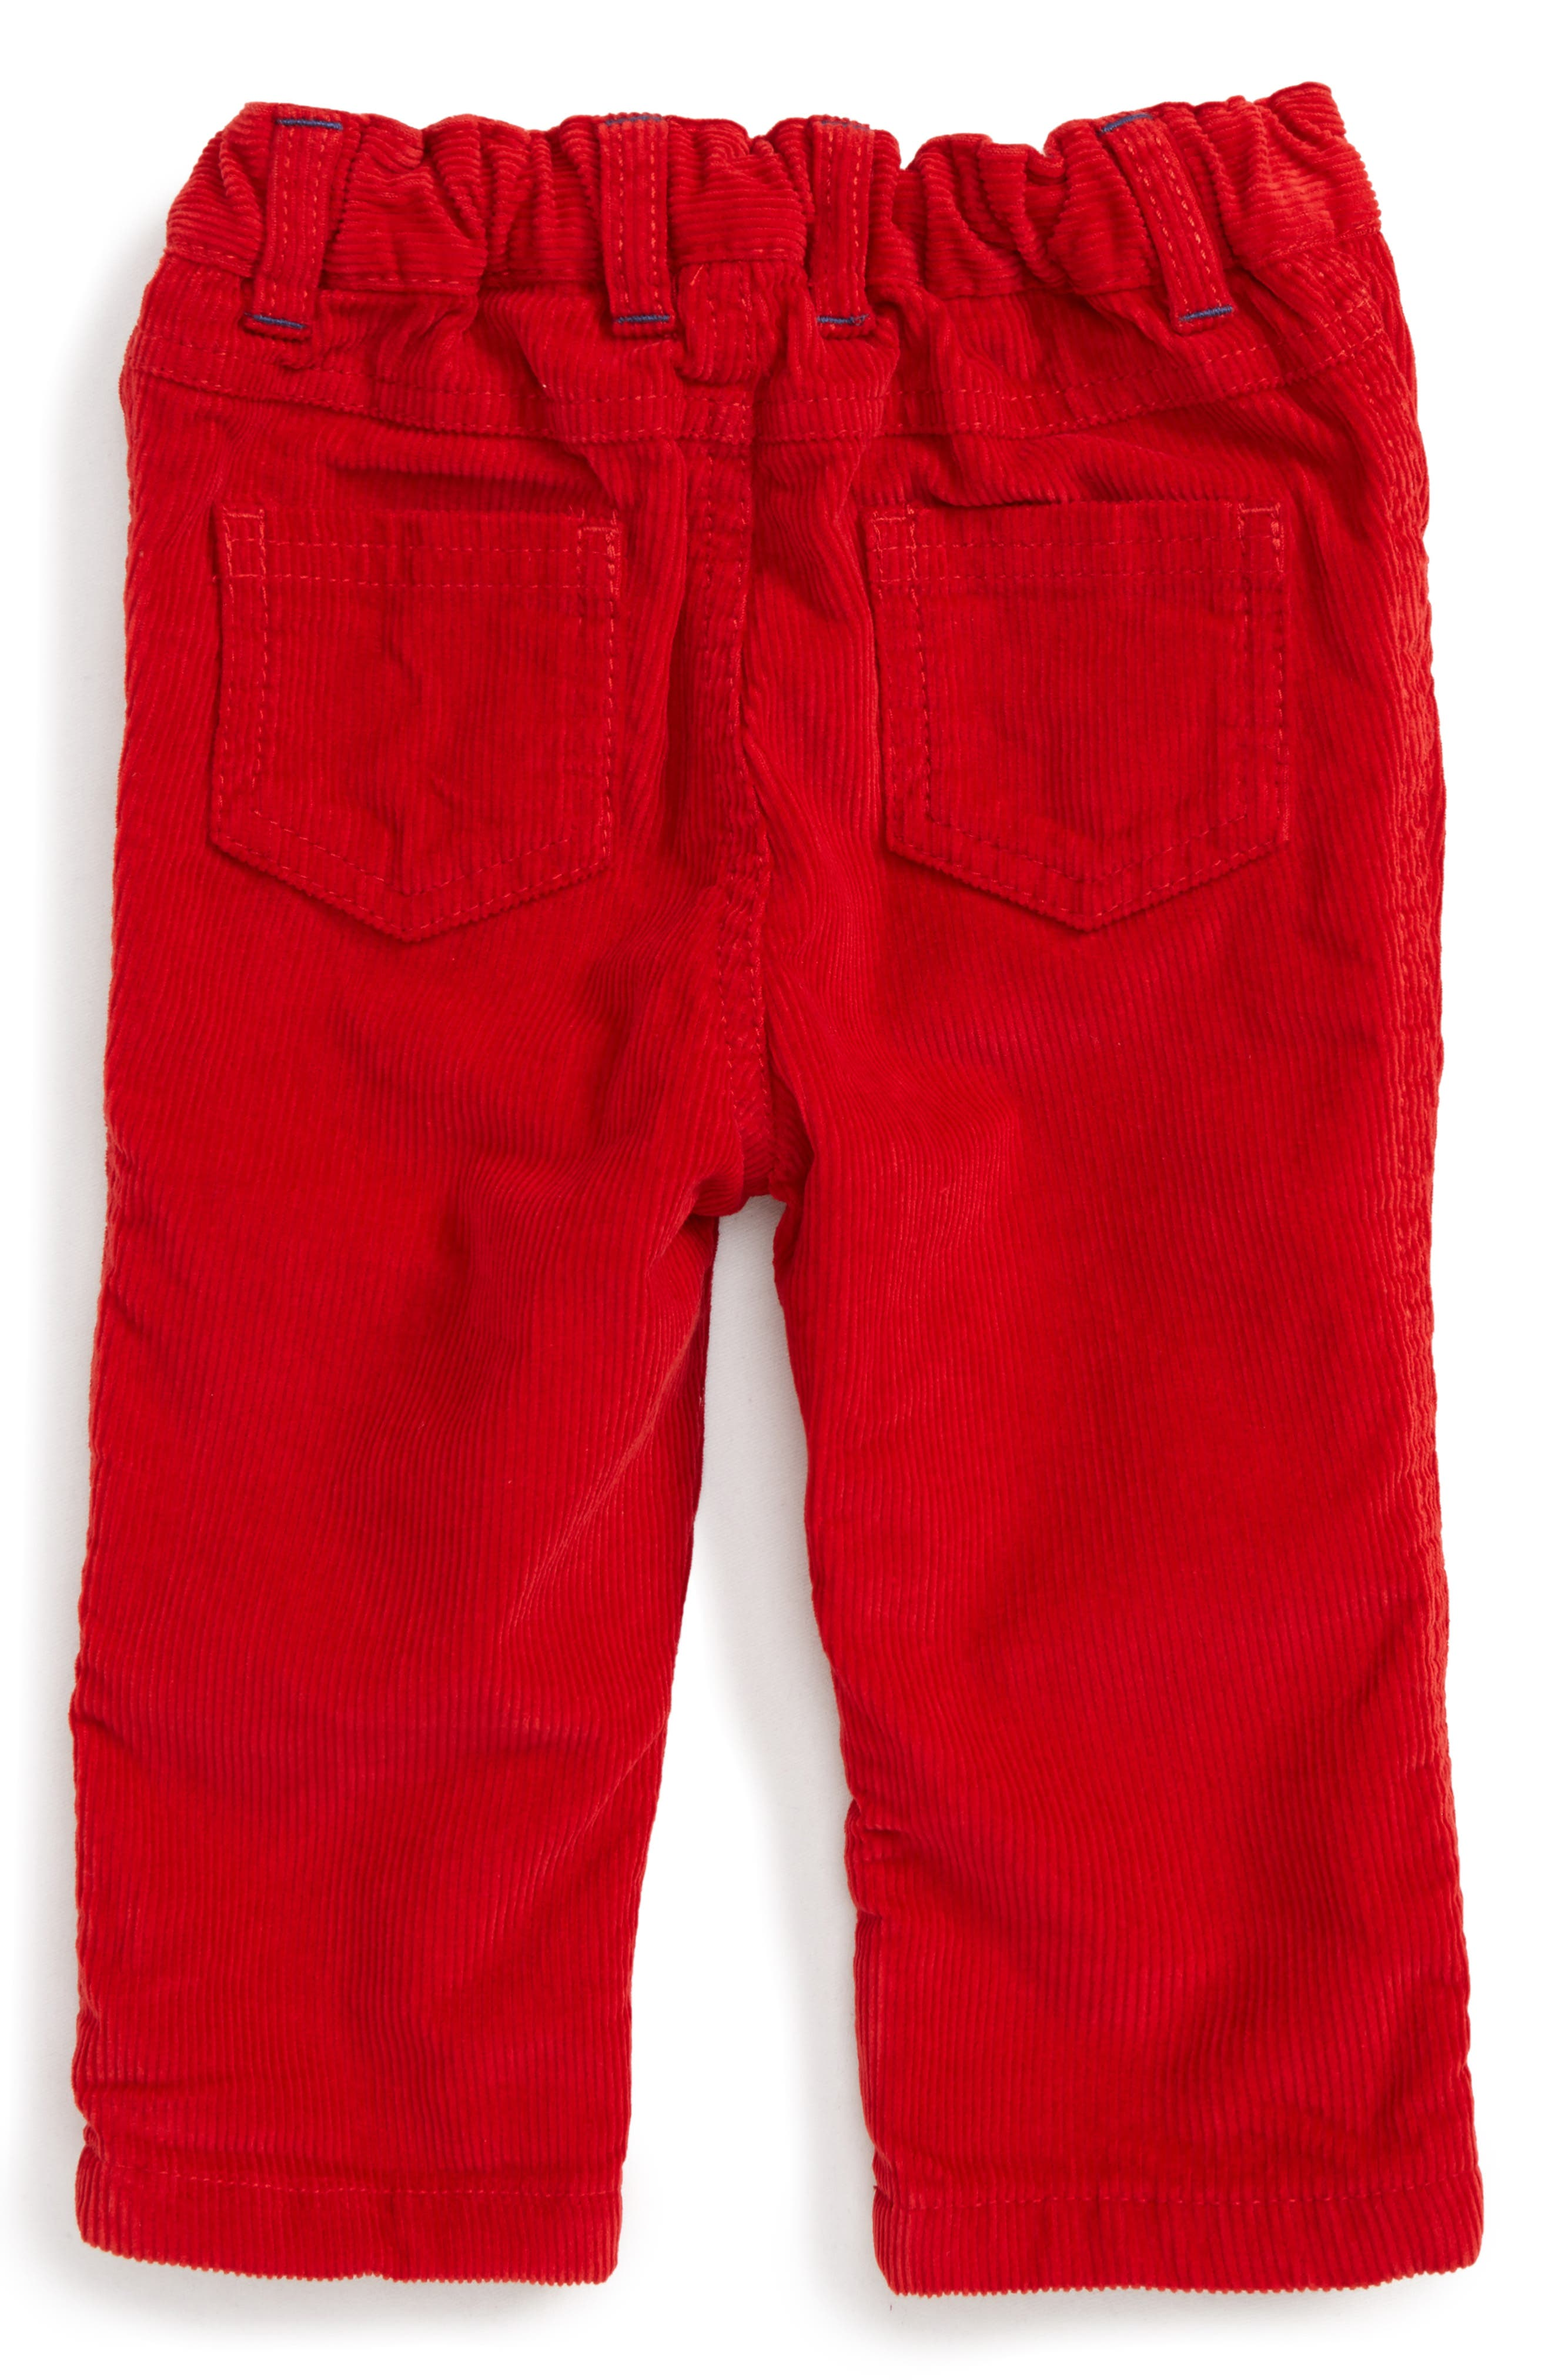 Lined Corduroy Pants,                             Alternate thumbnail 2, color,                             Red Engine Red